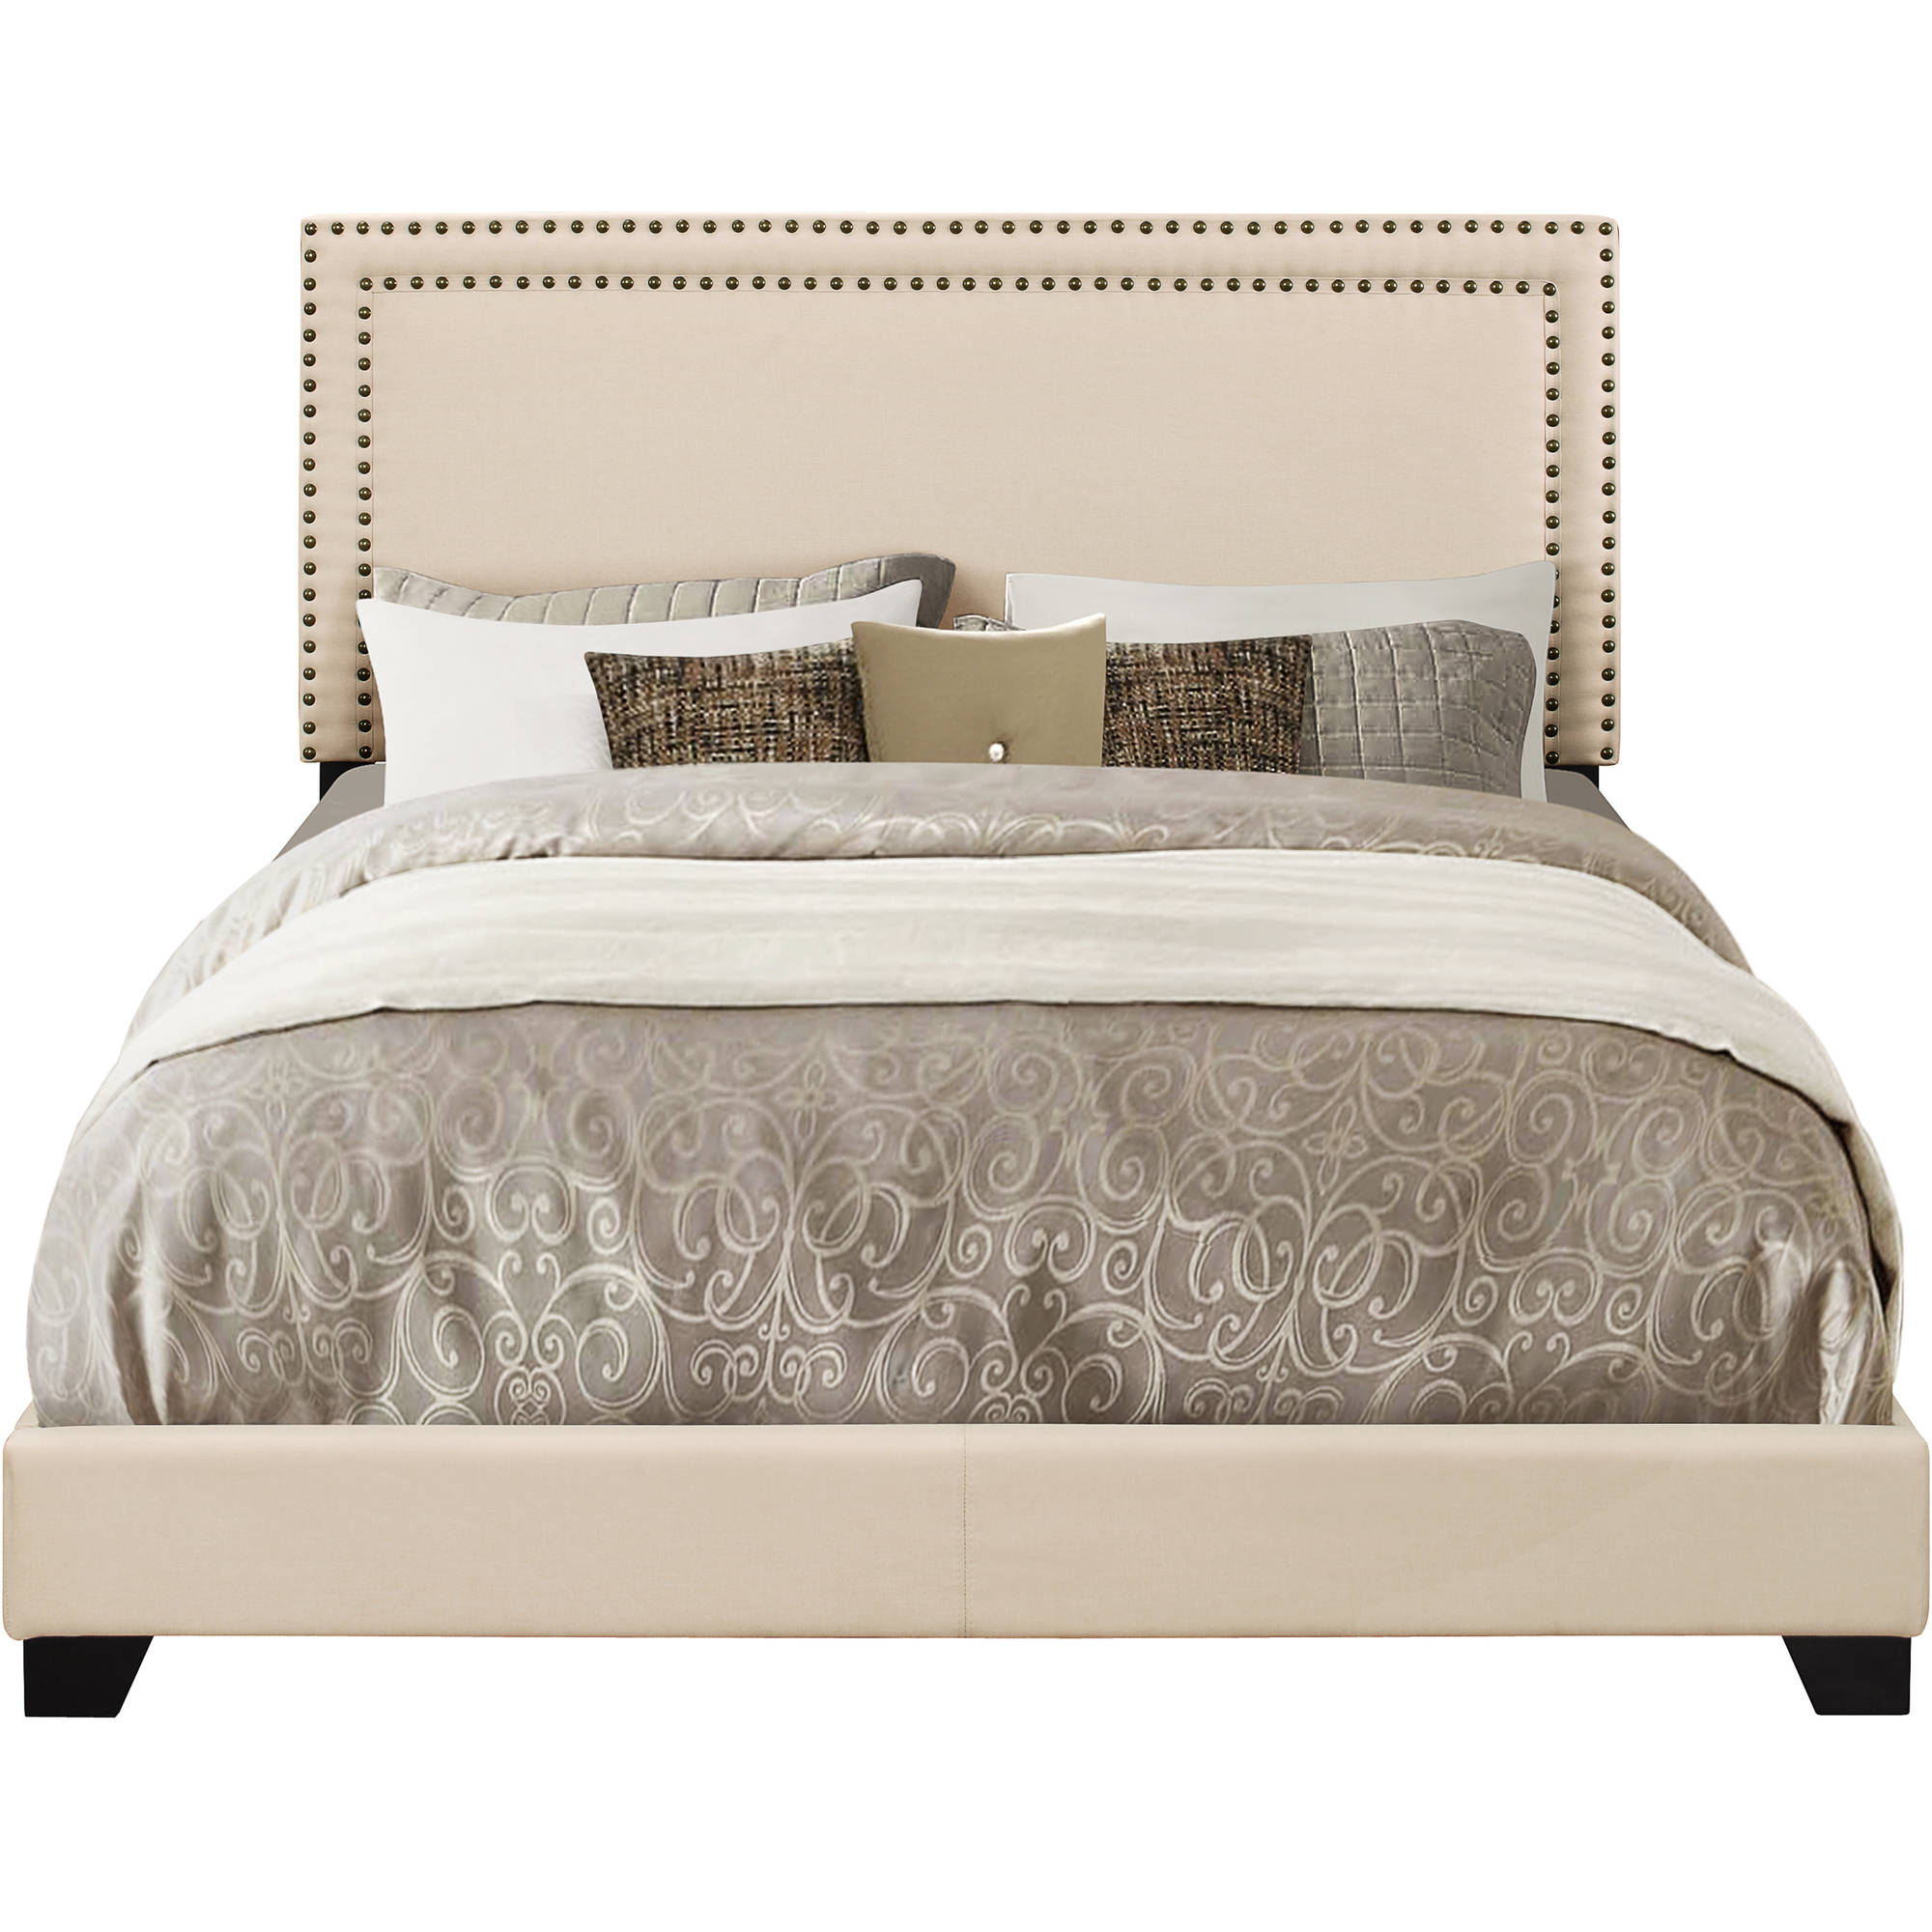 Cream Upholstered Queen Bed with Nail Head Trim